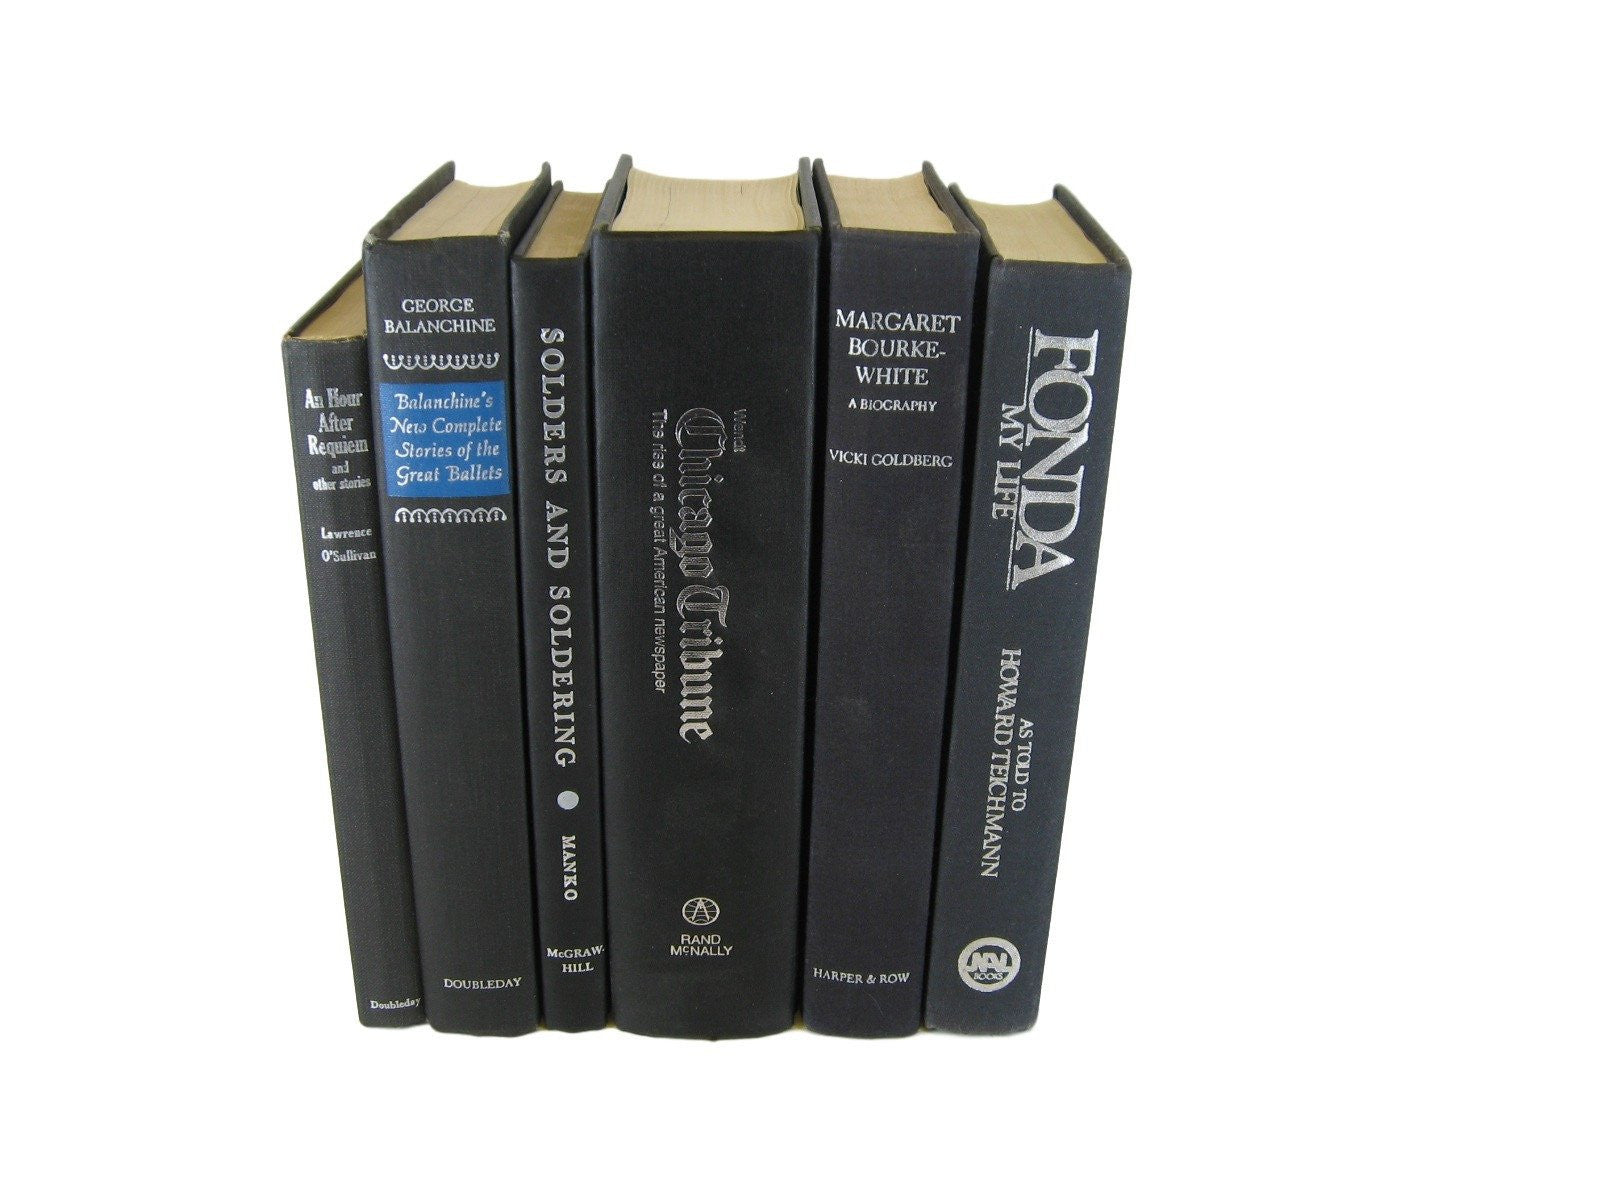 Vintage Black Books for Decor, S/6 - Decades of Vintage